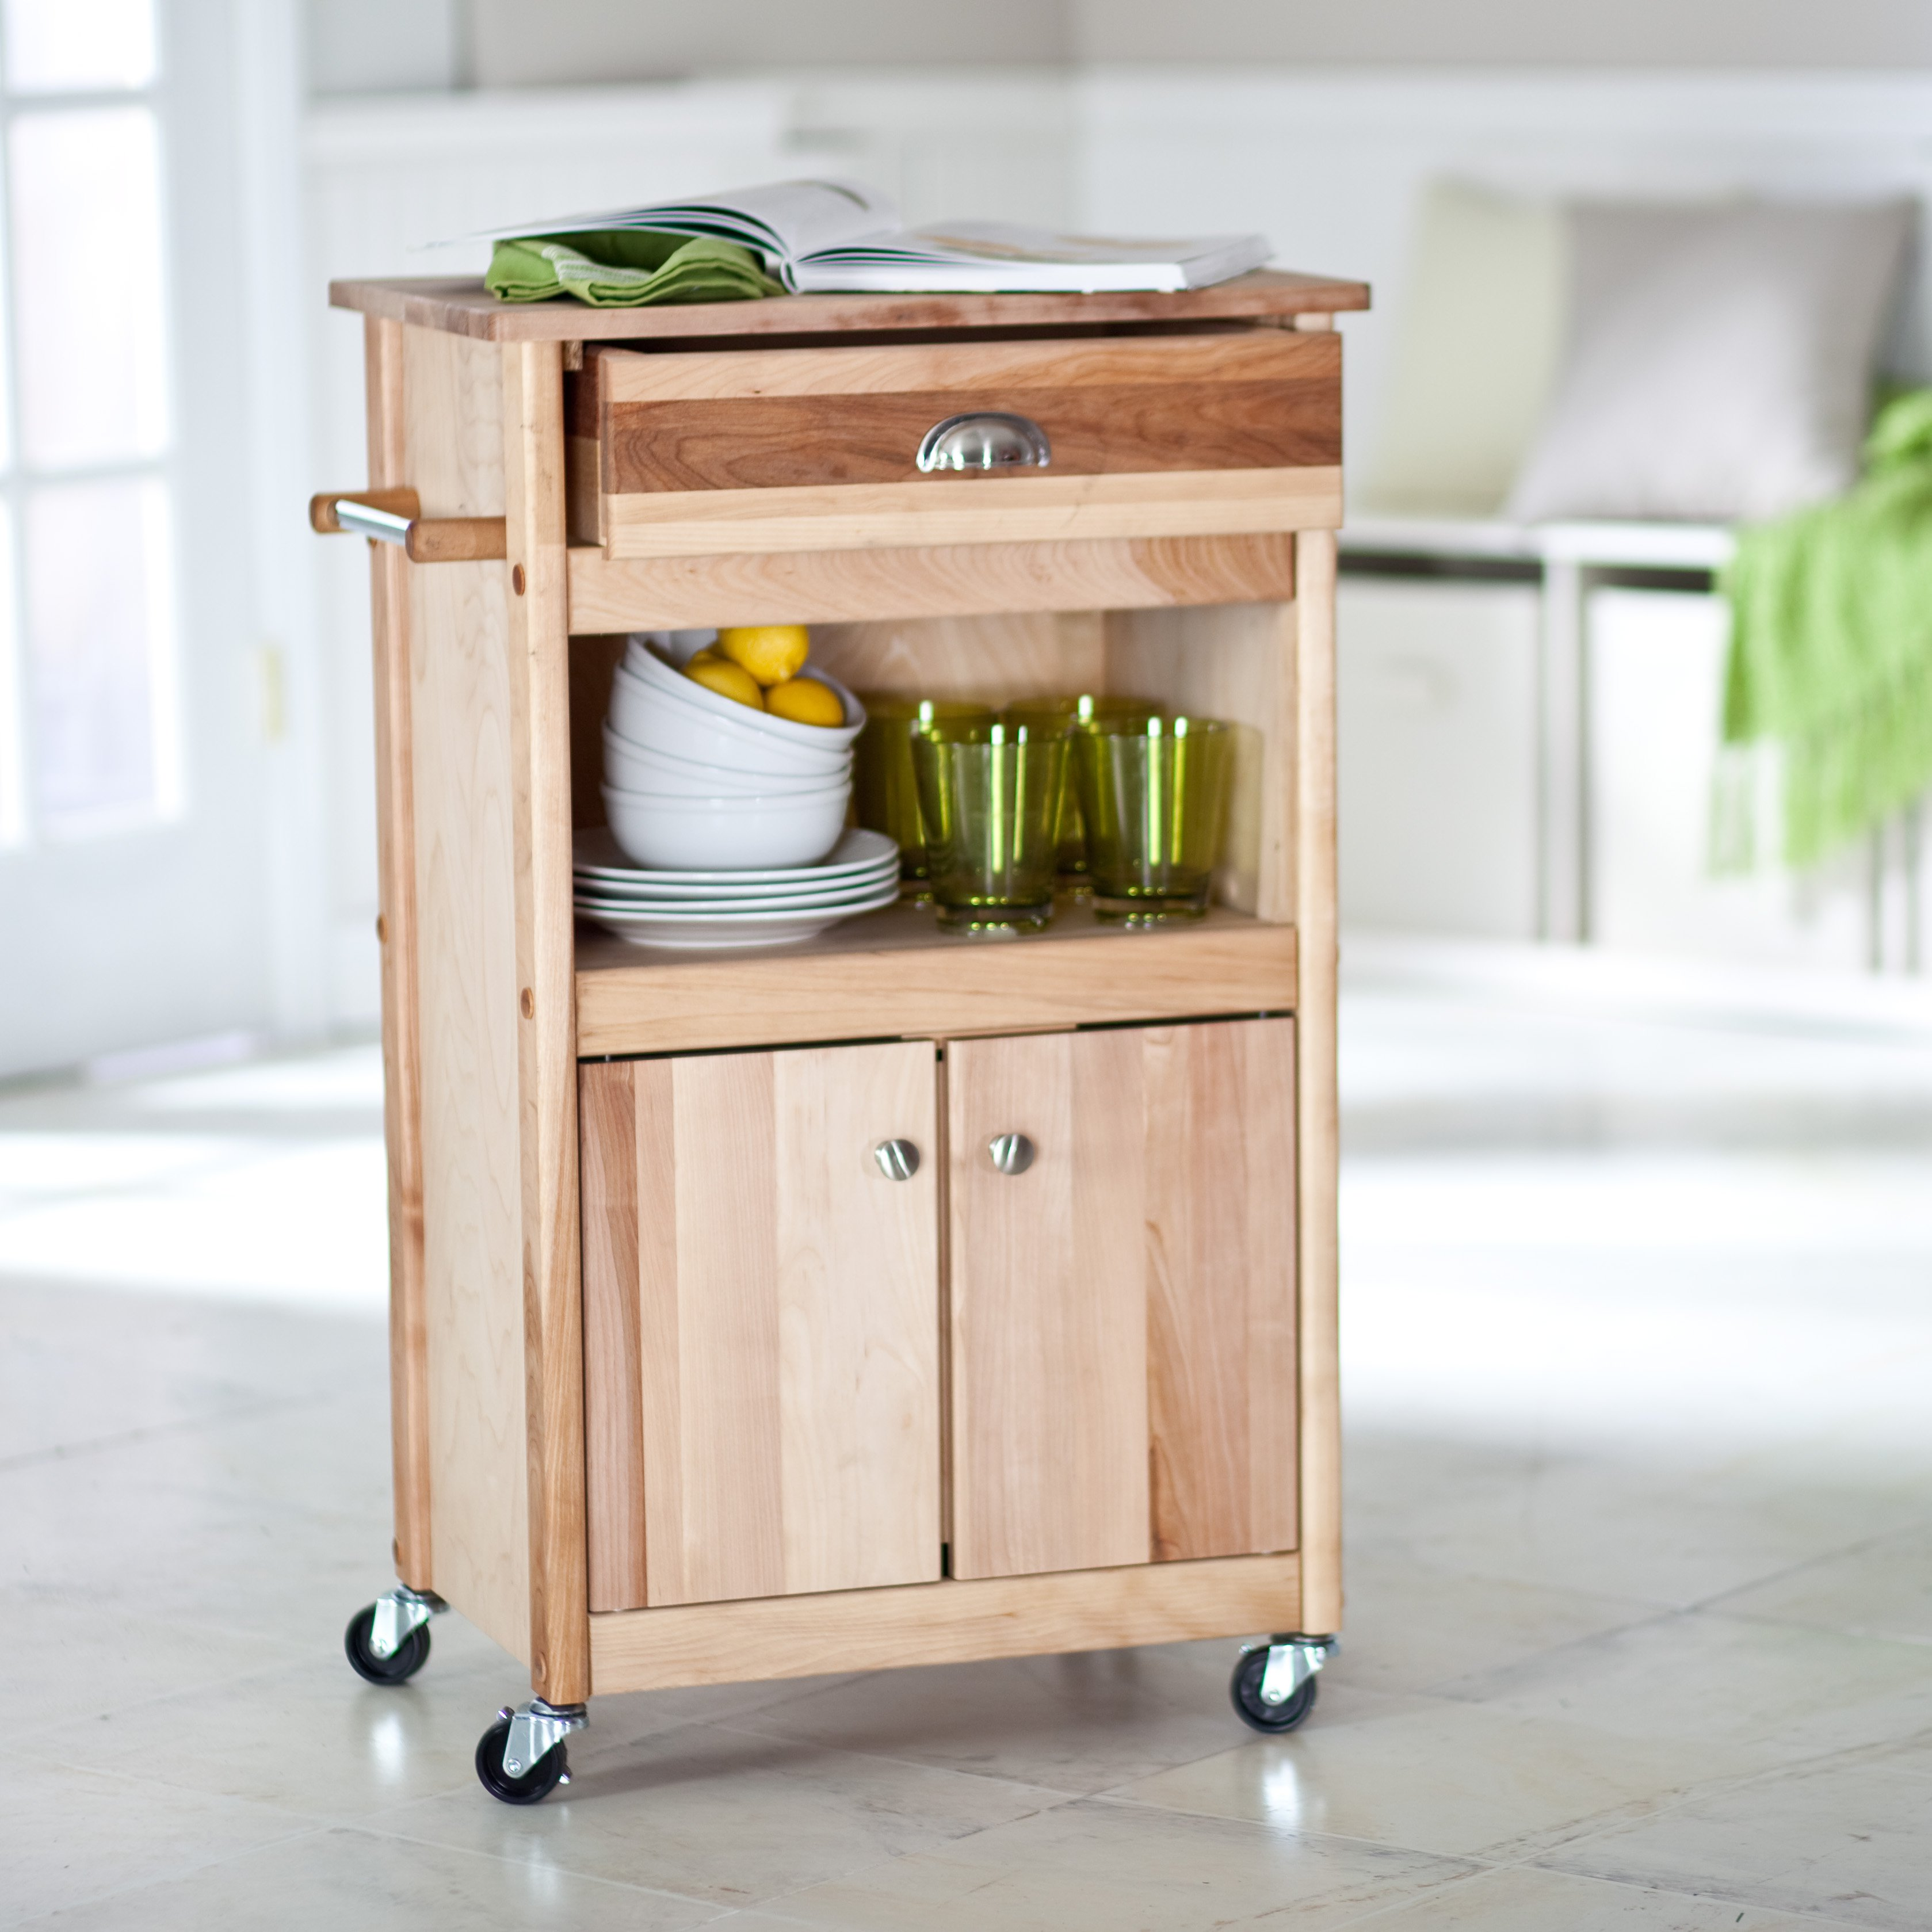 Classy microwave cart ikea for kitchen with microwave cart with storage ikea